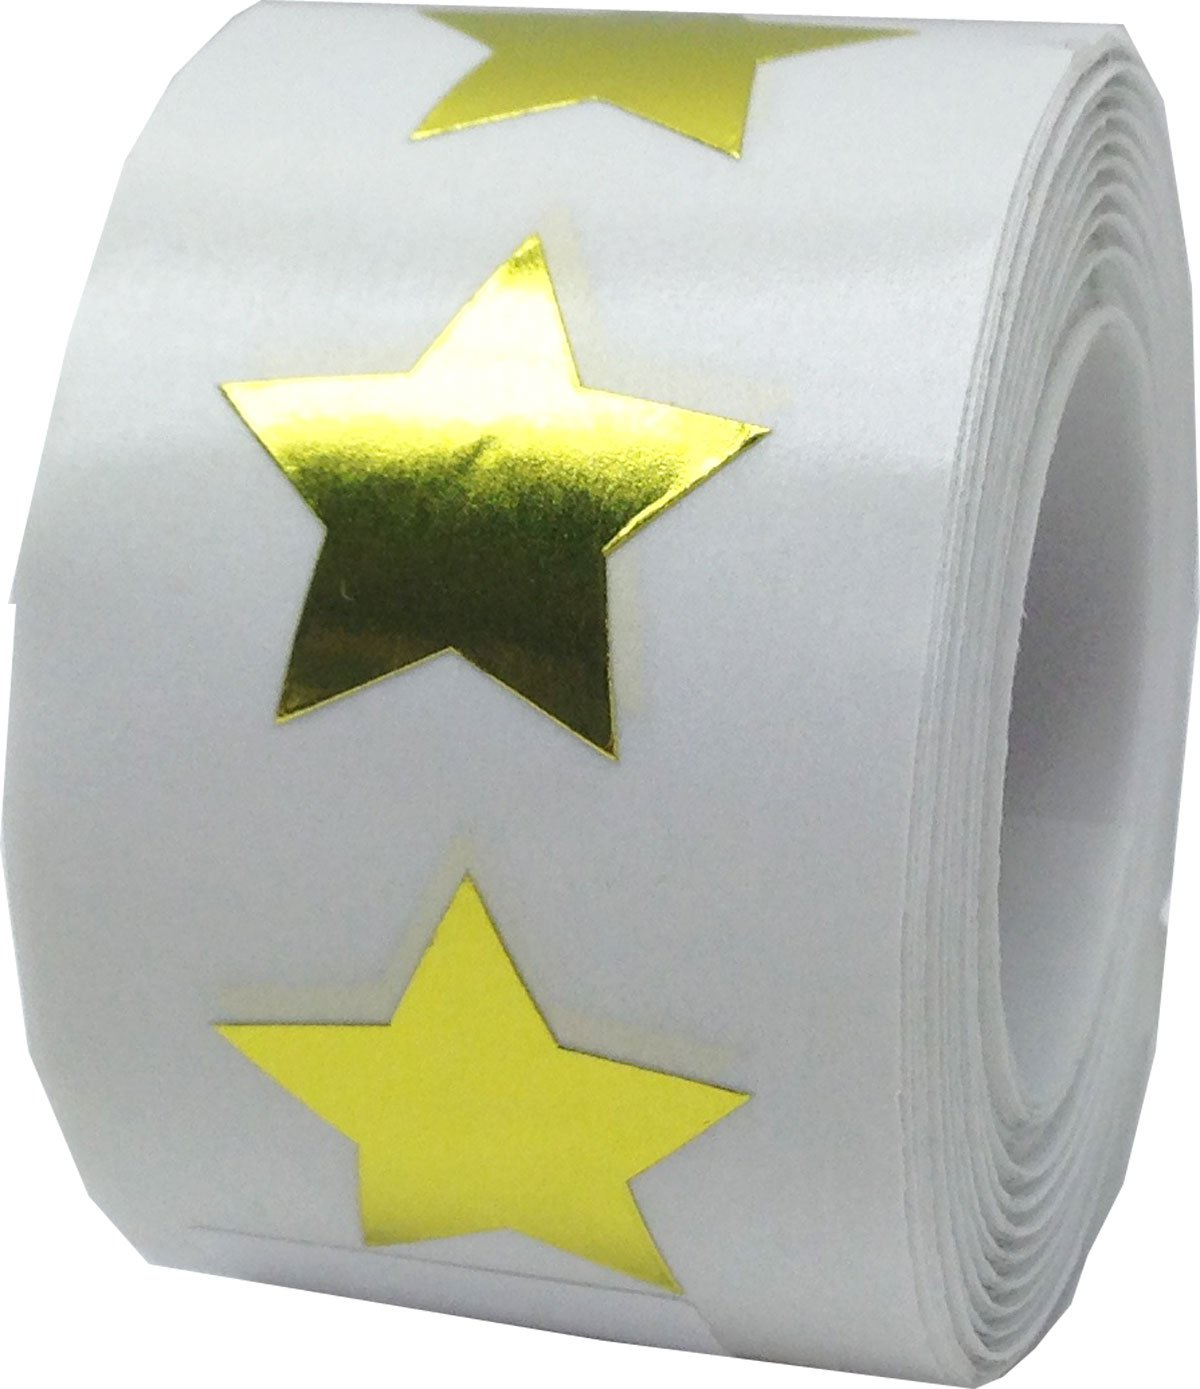 Metallic Gold Star Shape Stickers Shiny Foil Teacher Supplies 3/4 Inch 500 Adhesive Labels